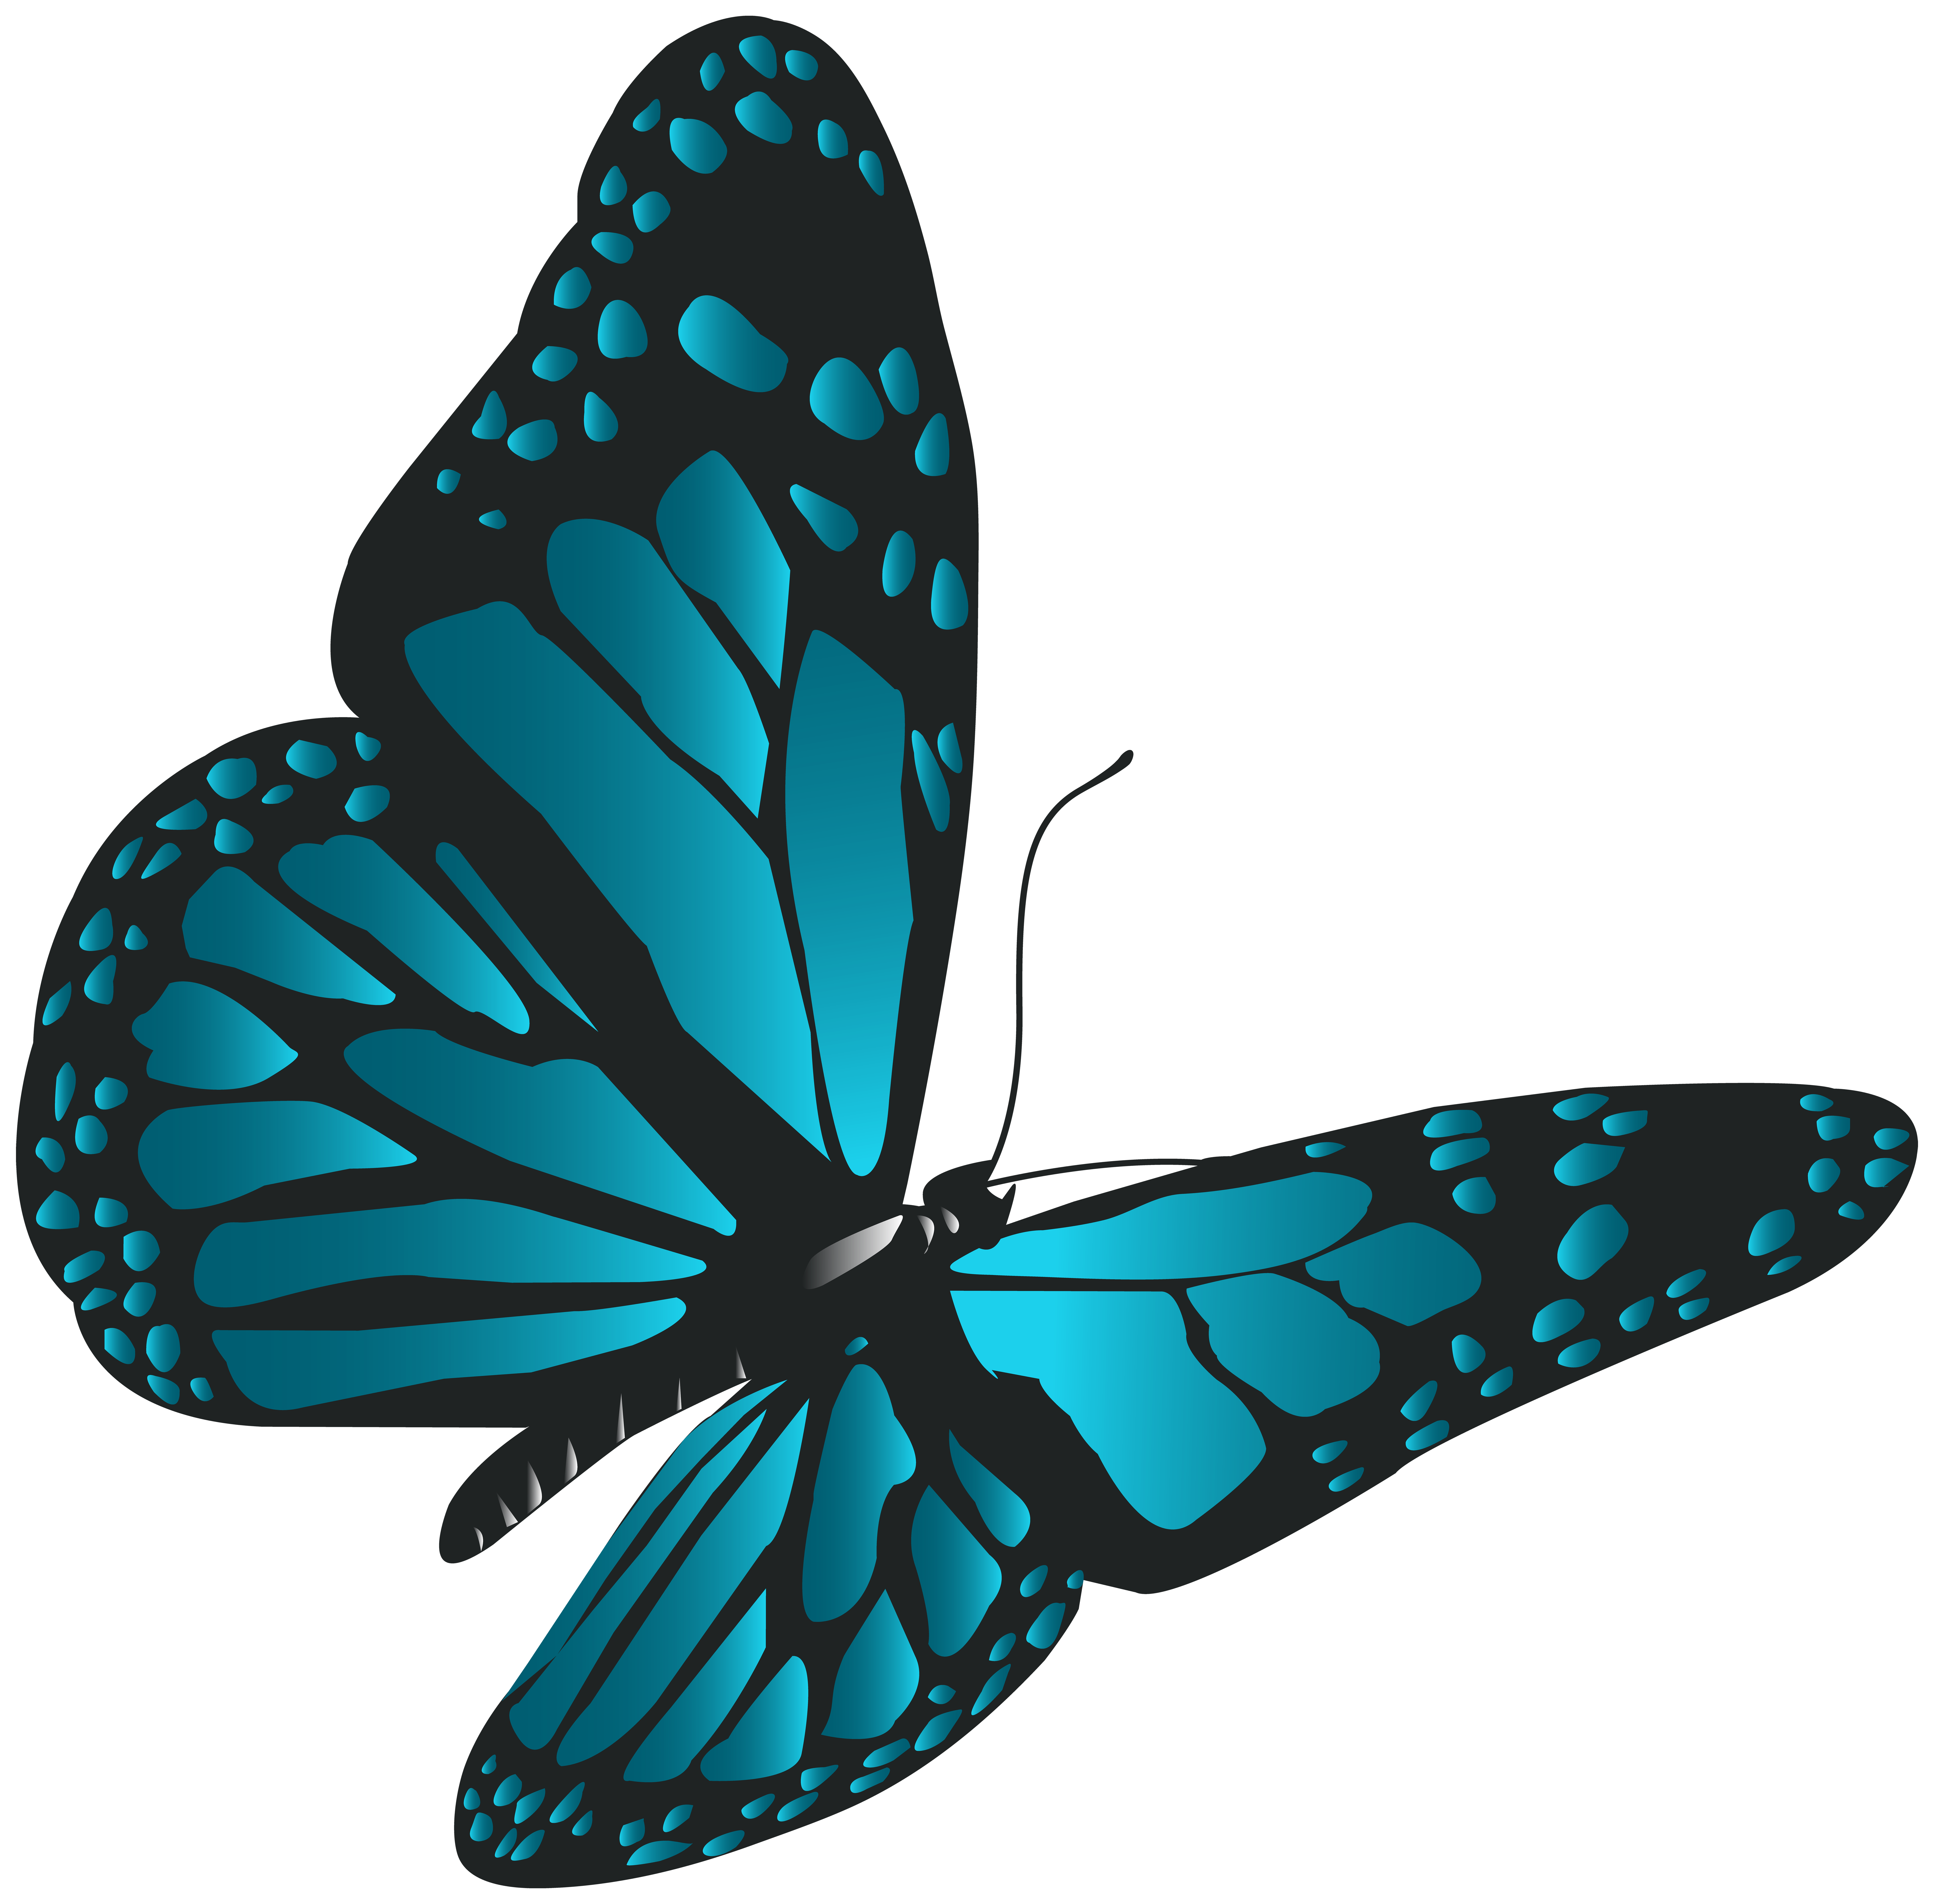 Butterfly png images. Blue clip art gallery